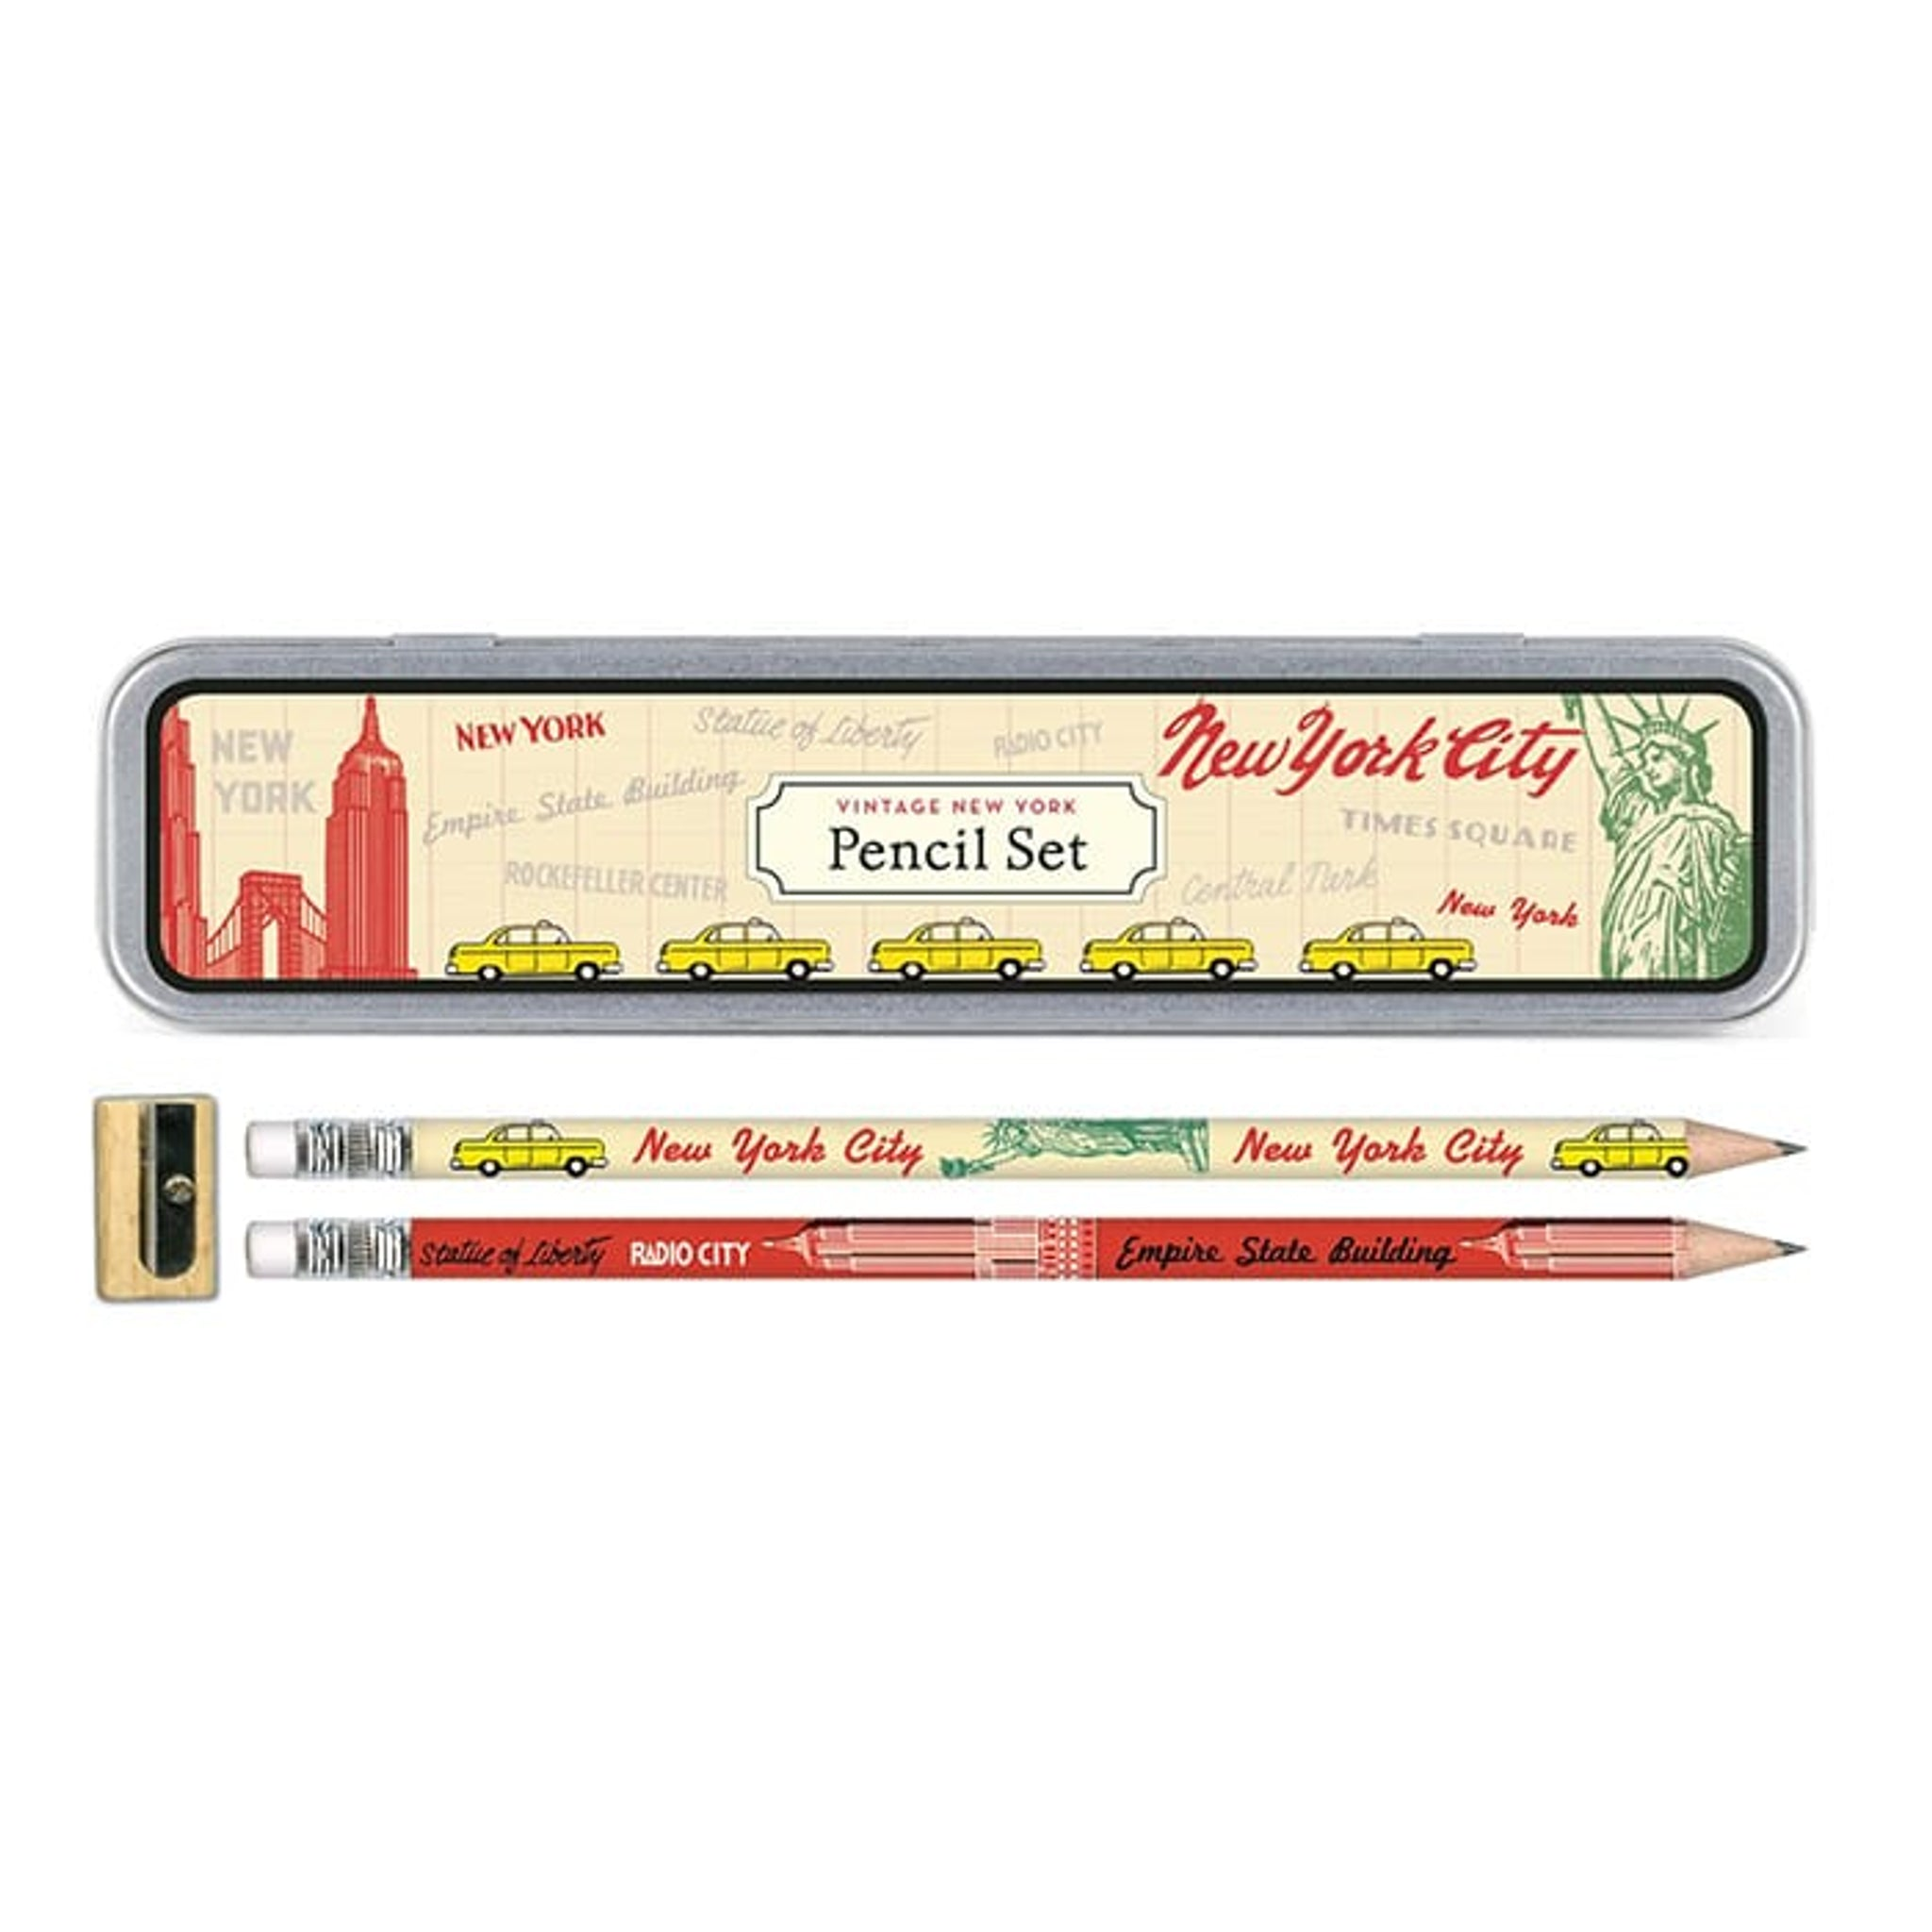 Cavallini Pencil Set Vintage New York